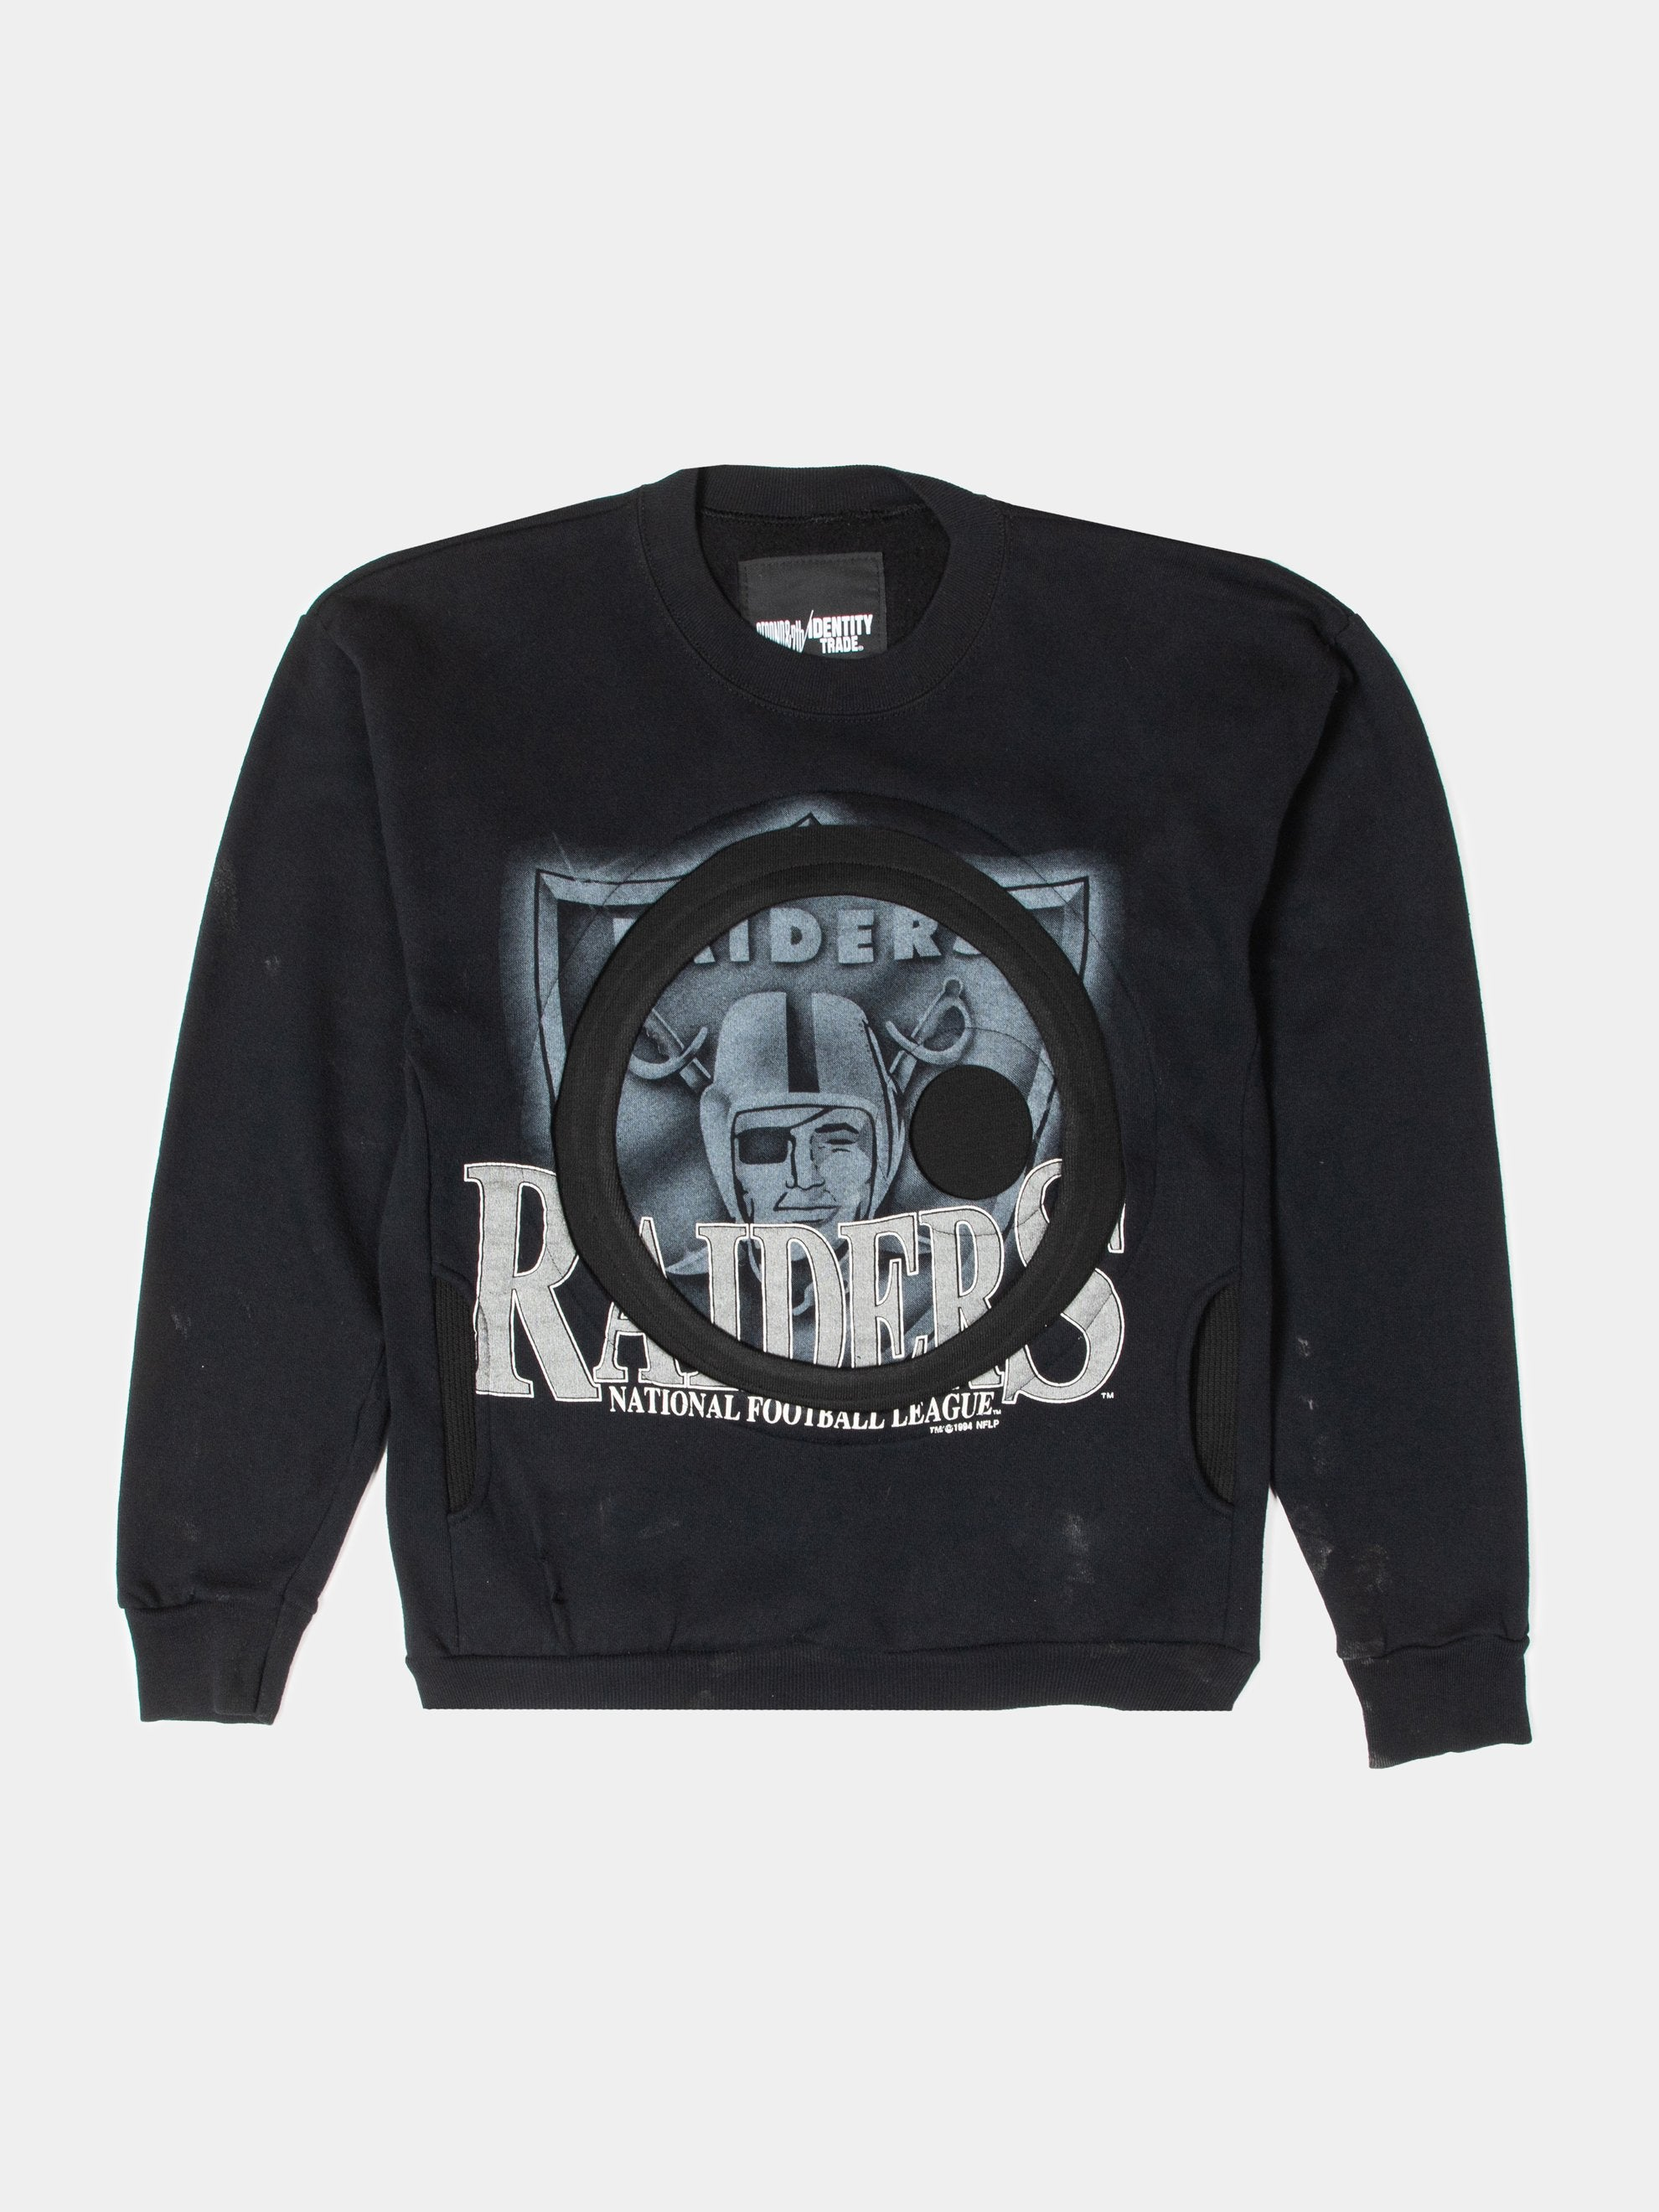 Raiders Pocketed Crewneck